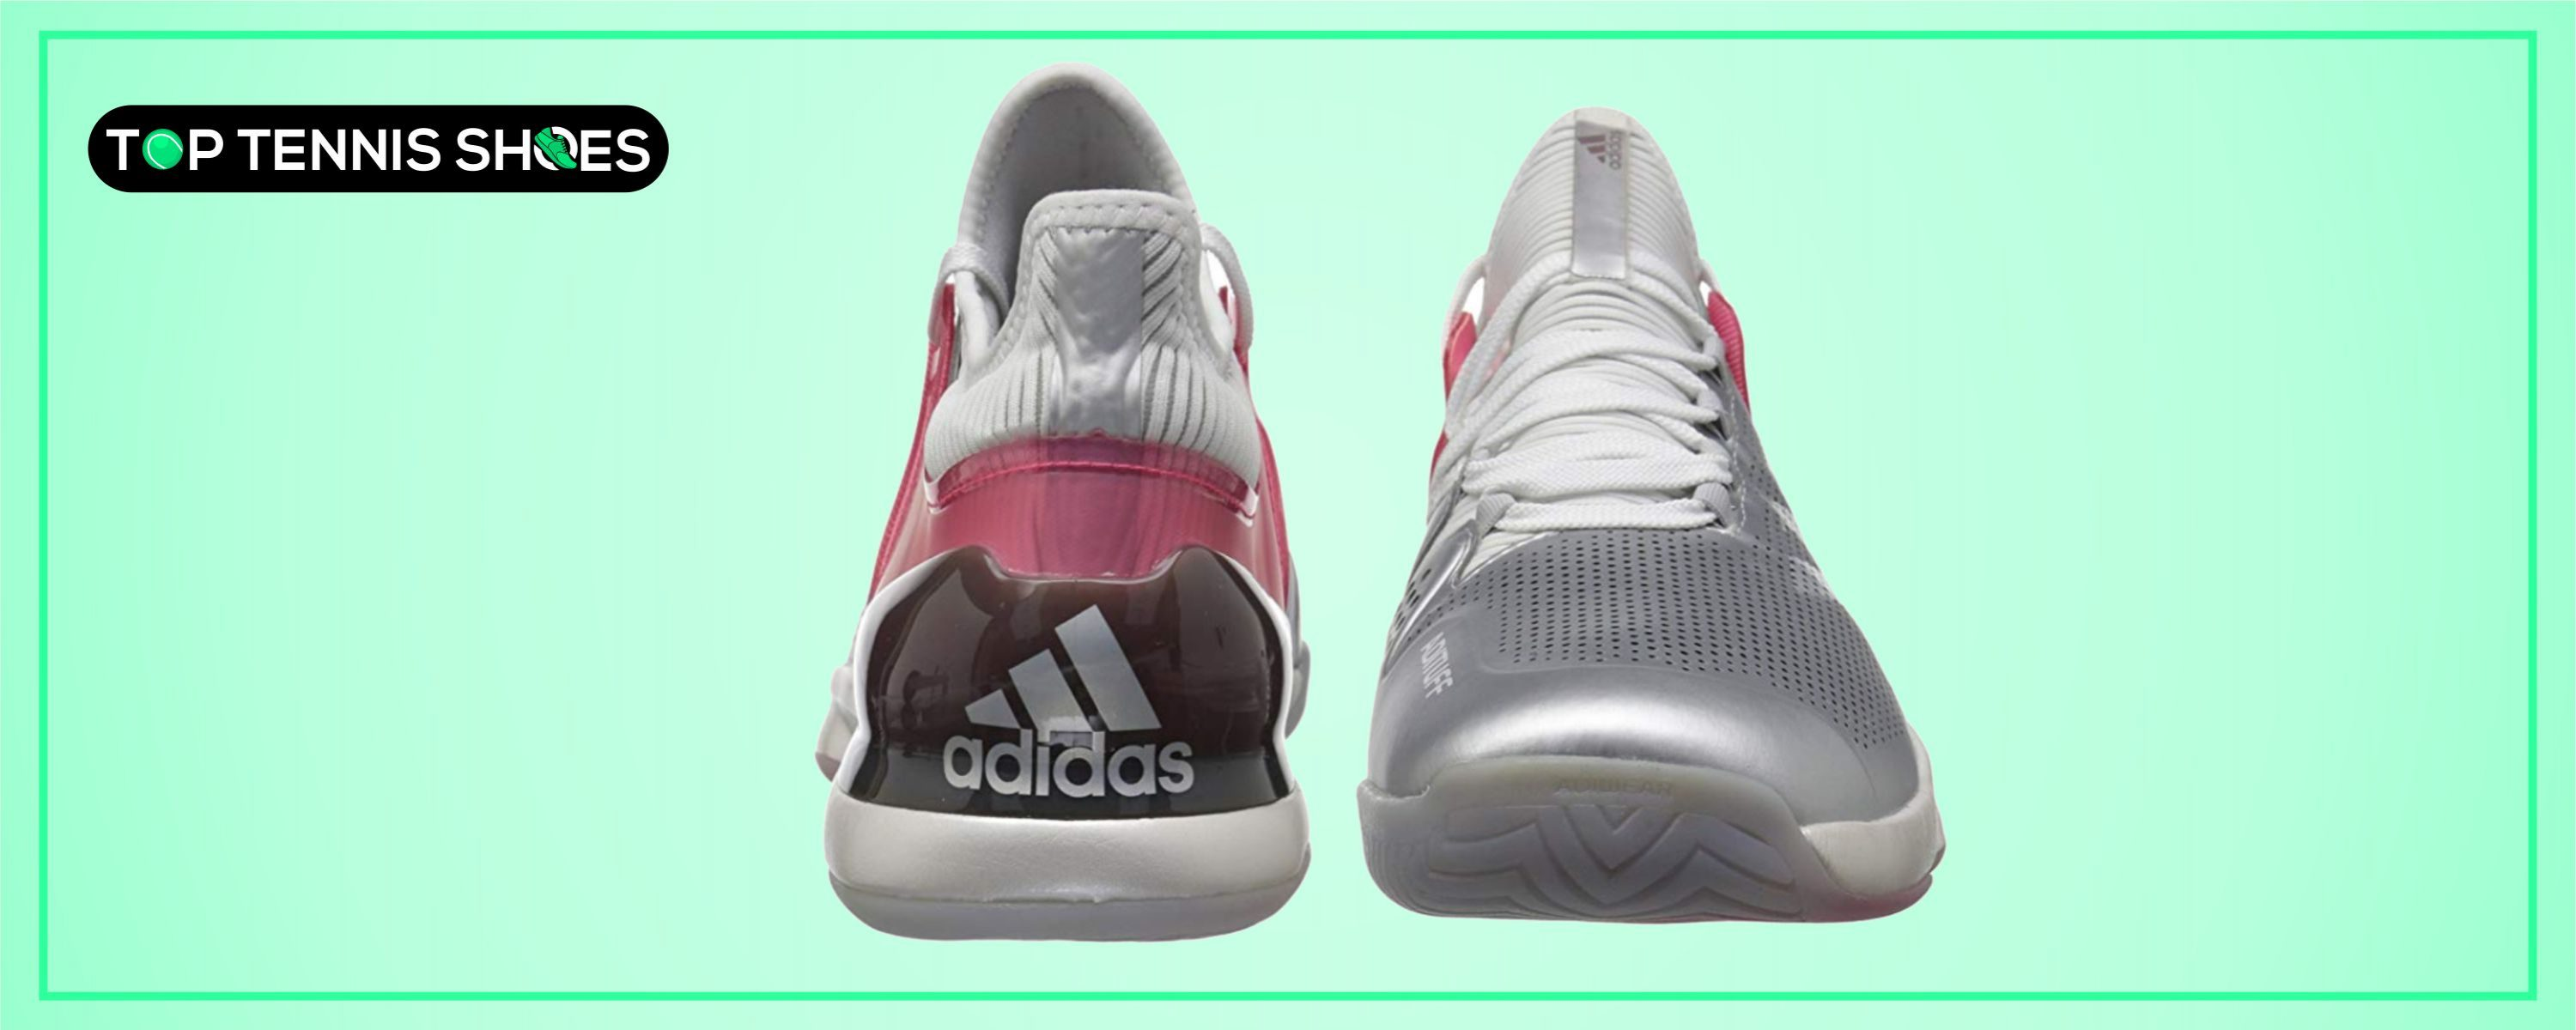 Adidas Court Tennis Shoes for Sliding